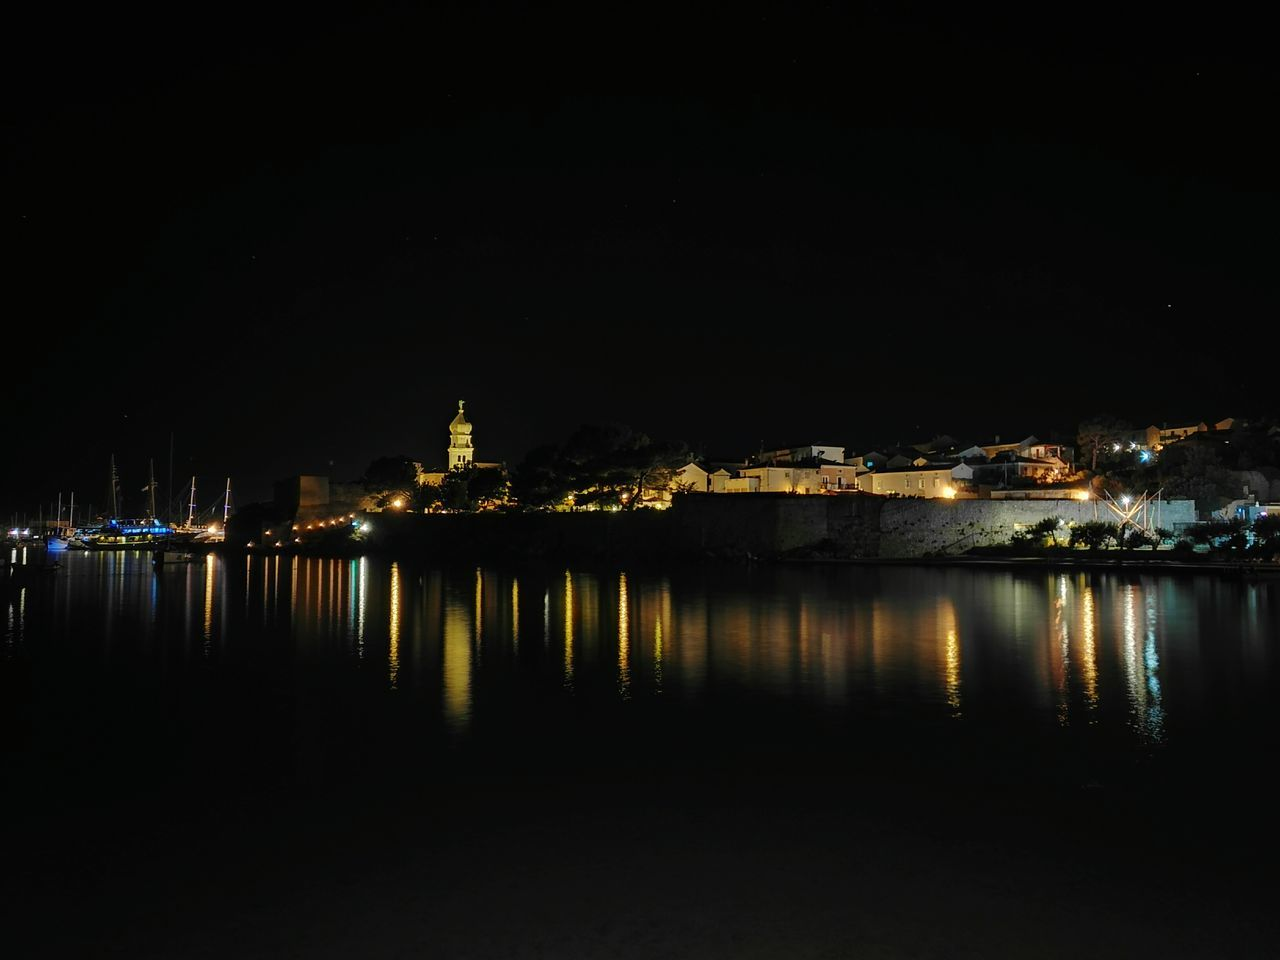 Illuminated Night Reflection Building Exterior Water Waterfront No People Water Surface City Life Nightphotography City Lights Sightseeing Slow Shutter Long Exposure Smartphonephotography Honor 7 Old Town Frankopan Castle Krk Cathedral Boats Water Reflections Honor7